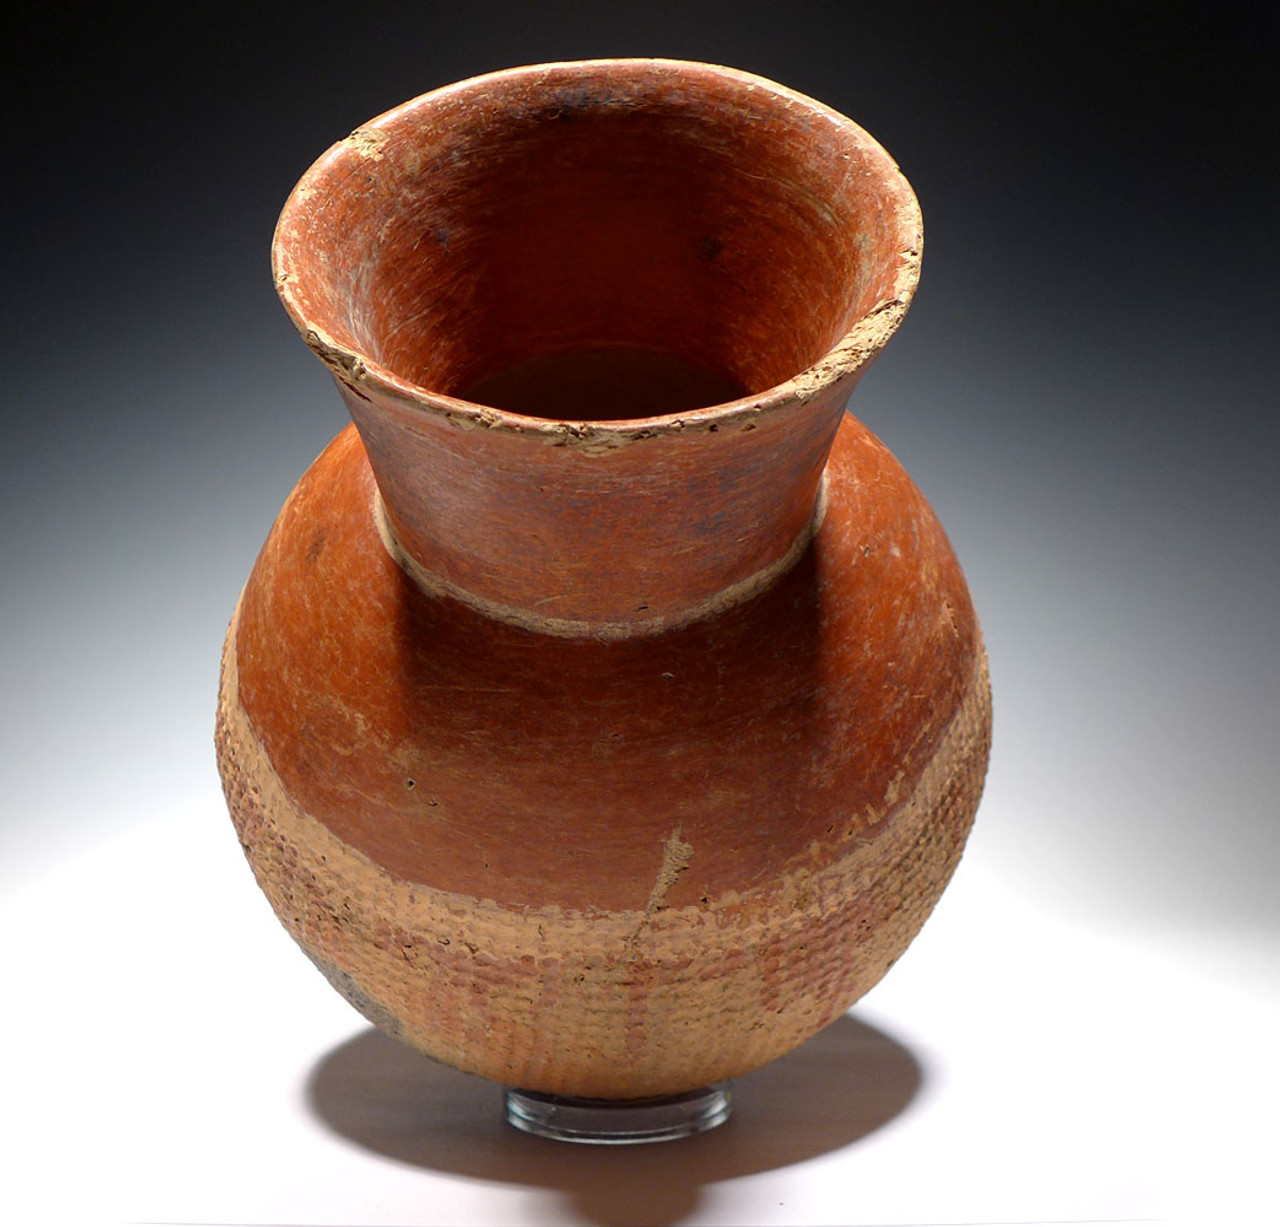 FINEST OF THE COLLECTION - EXTREMELY RARE RED AFRICAN NEOLITHIC FLARED RIM CERAMIC POT FROM THE WEST SAHEL  *PCAP03